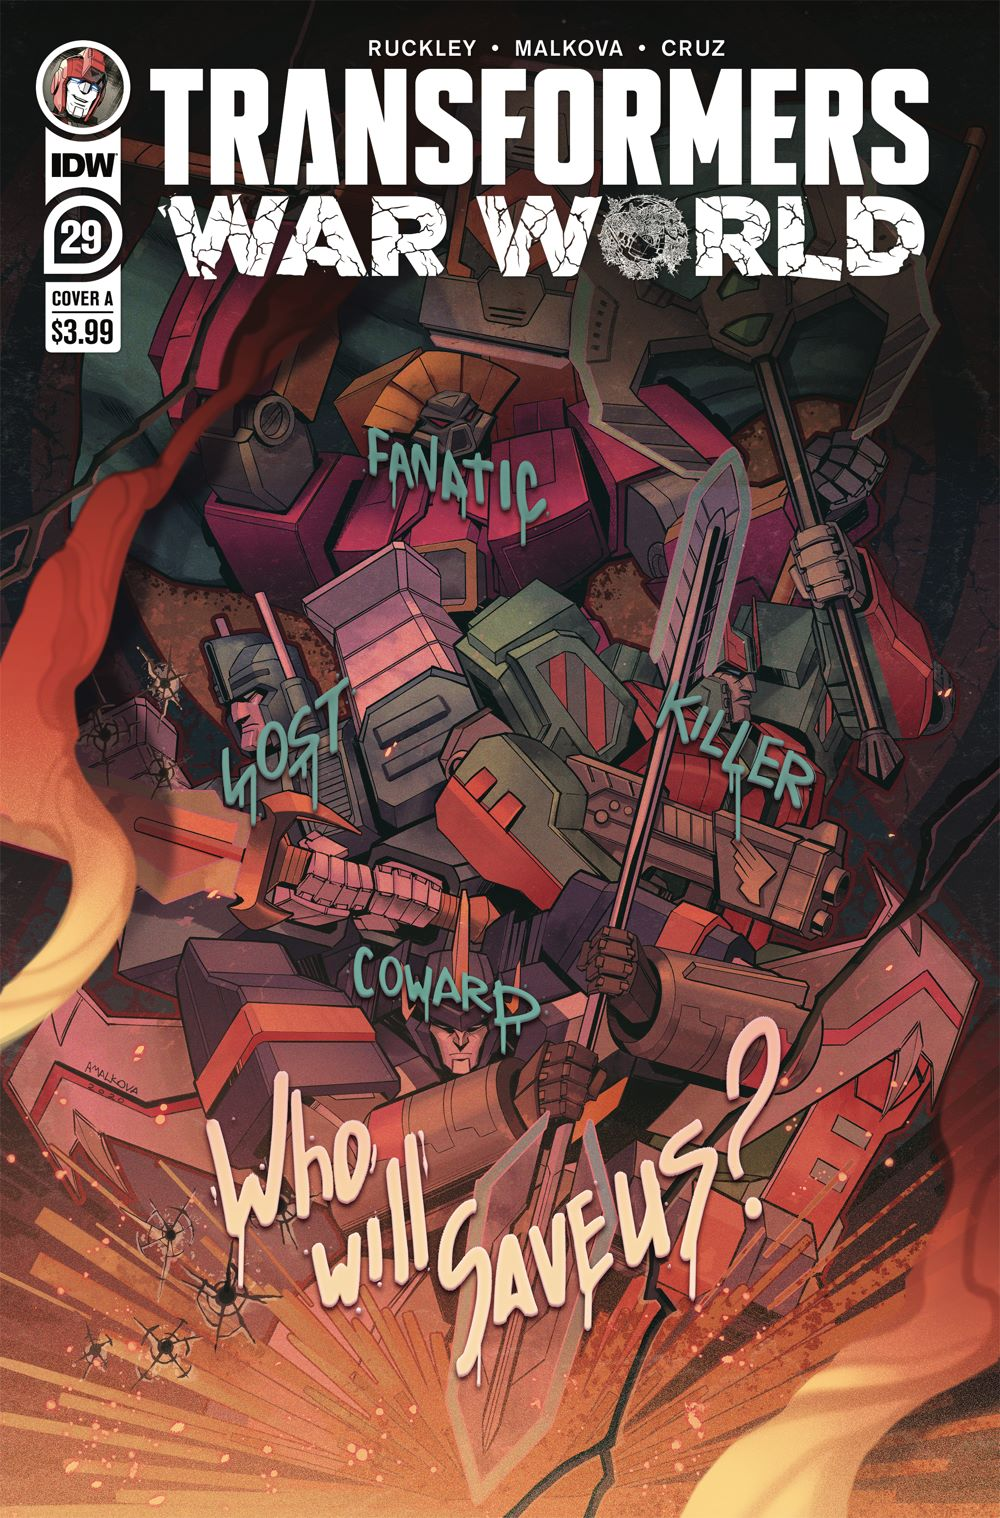 TF29-cvr-A-rev ComicList: IDW Publishing New Releases for 05/19/2021